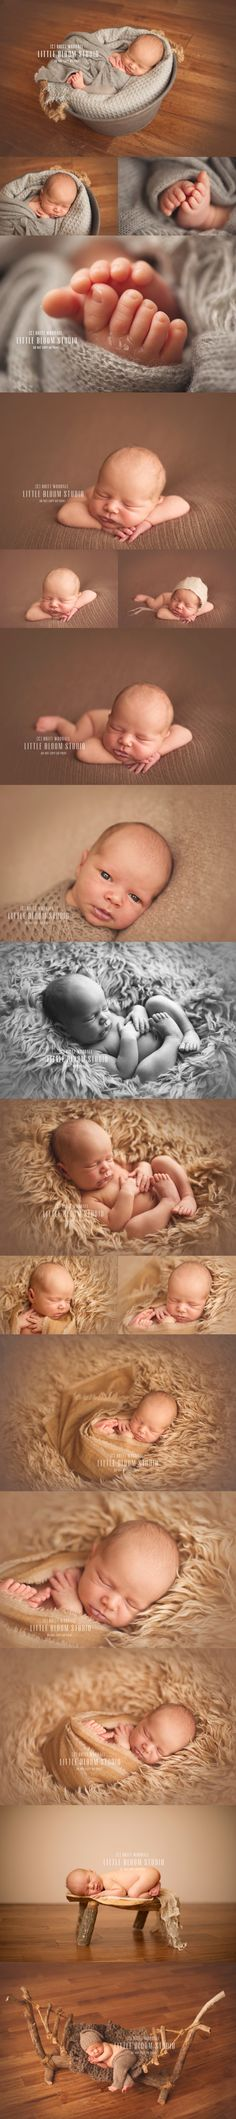 Ideas for baby photoshoot setup newborn shoot Foto Newborn, Newborn Posing, Newborn Shoot, Newborn Photography Poses, Children Photography, Photography Ideas, Photography Classes, Sweets Photography, Photography Magazine